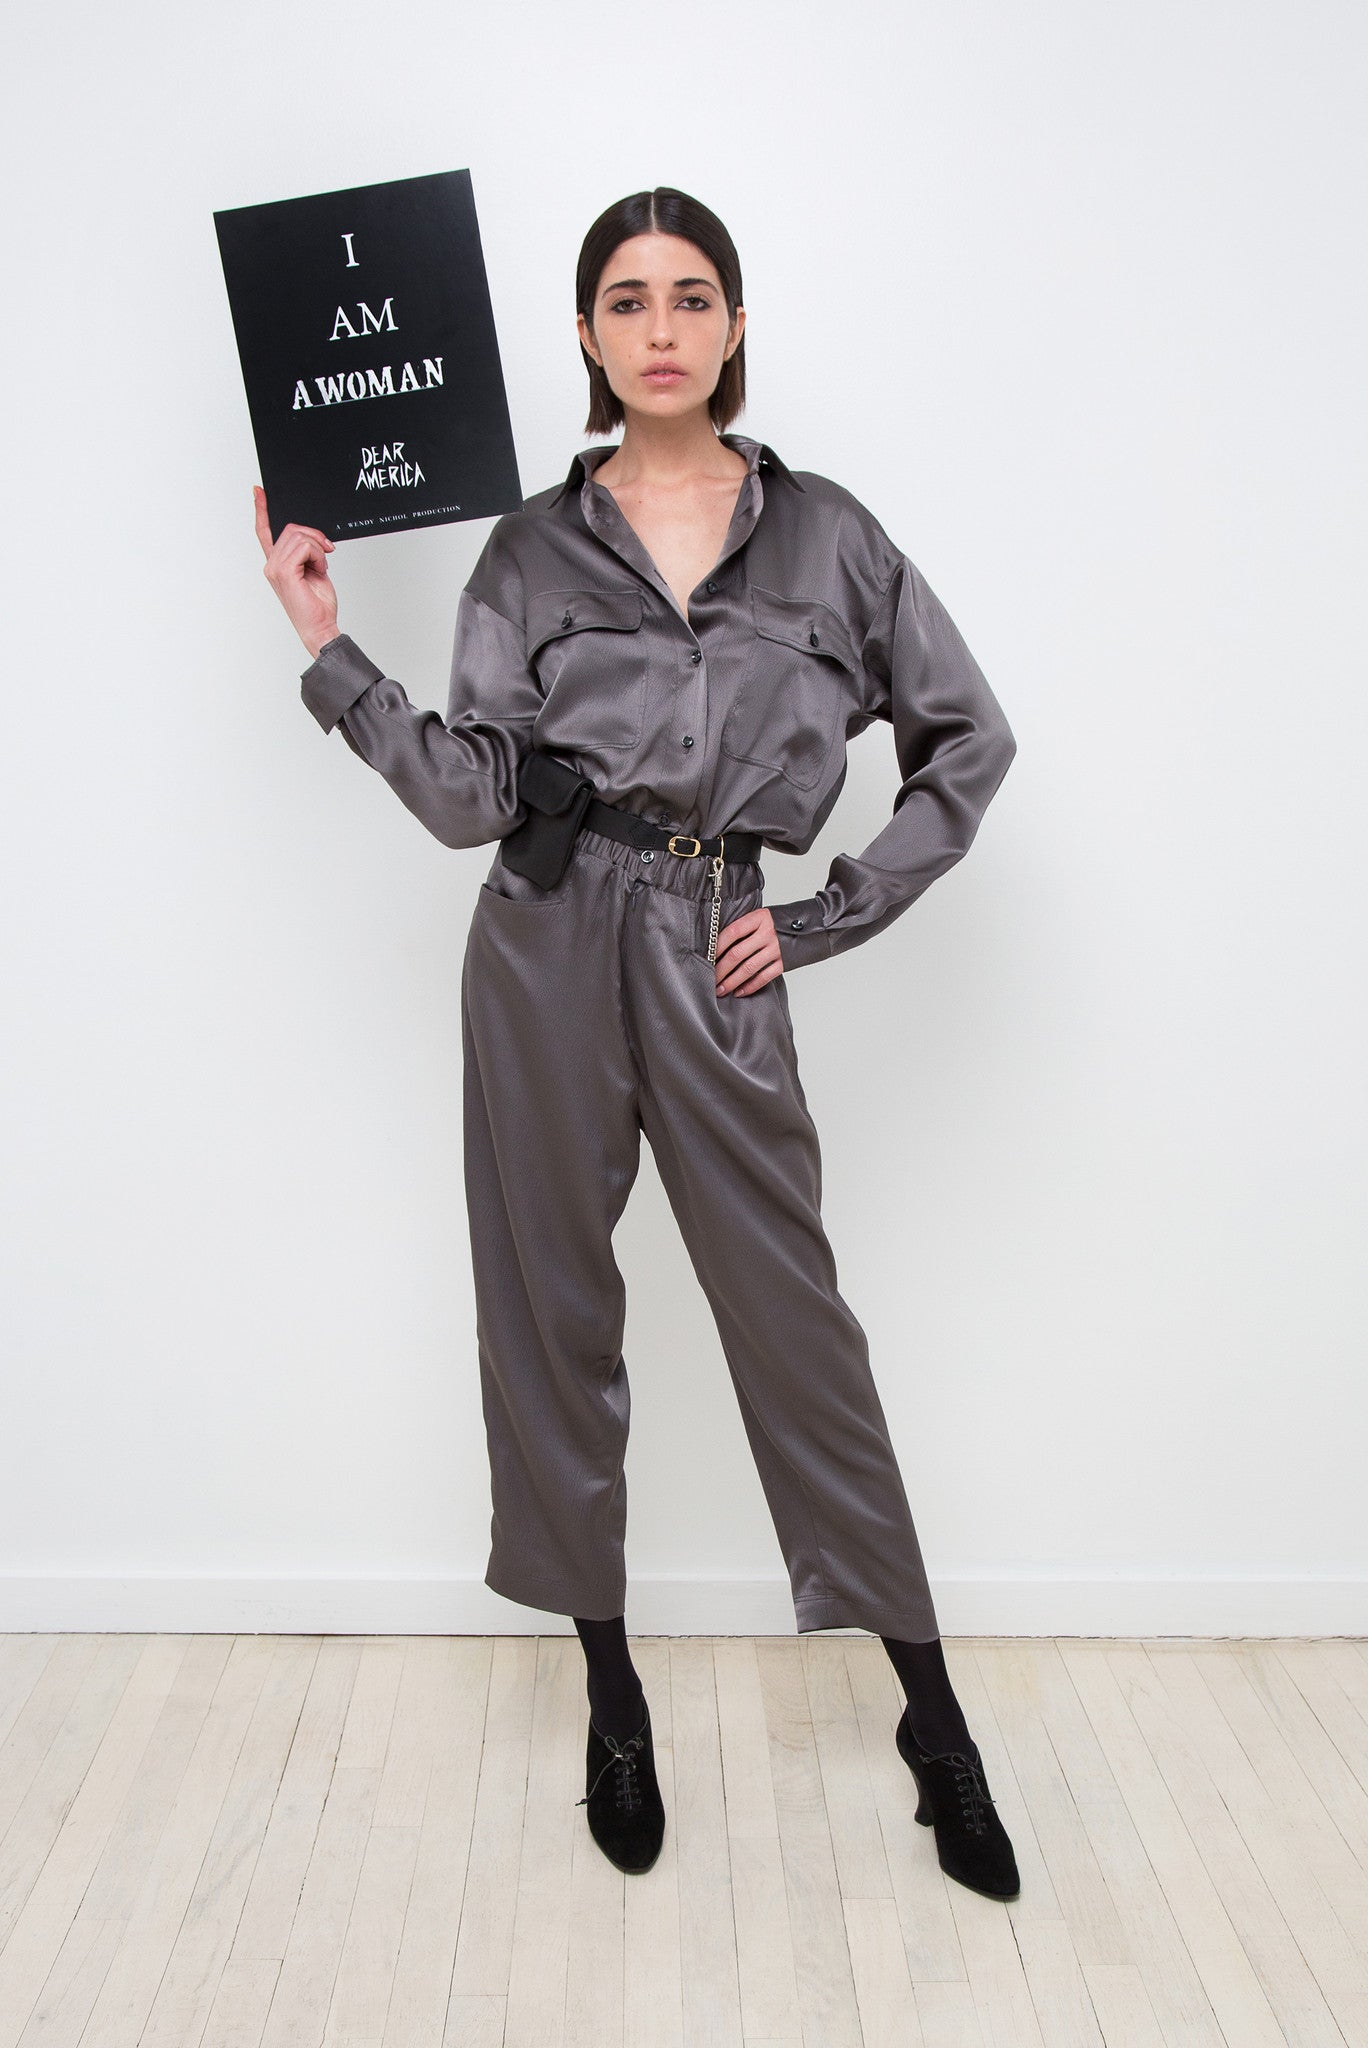 Vanessa Moreira IMG Model Wendy Nichol AW17 Clothing Fashion Anti Fascist Runway Show Dear America Handmade in NYC New York City Protest March I AM Long Sleeve Marching Jumper Silk Grey Gray Silver Purple Lilac button collar pockets GI Jane Combat Military Black Uniform Jumpsuit Jumper Aviator Top Gun